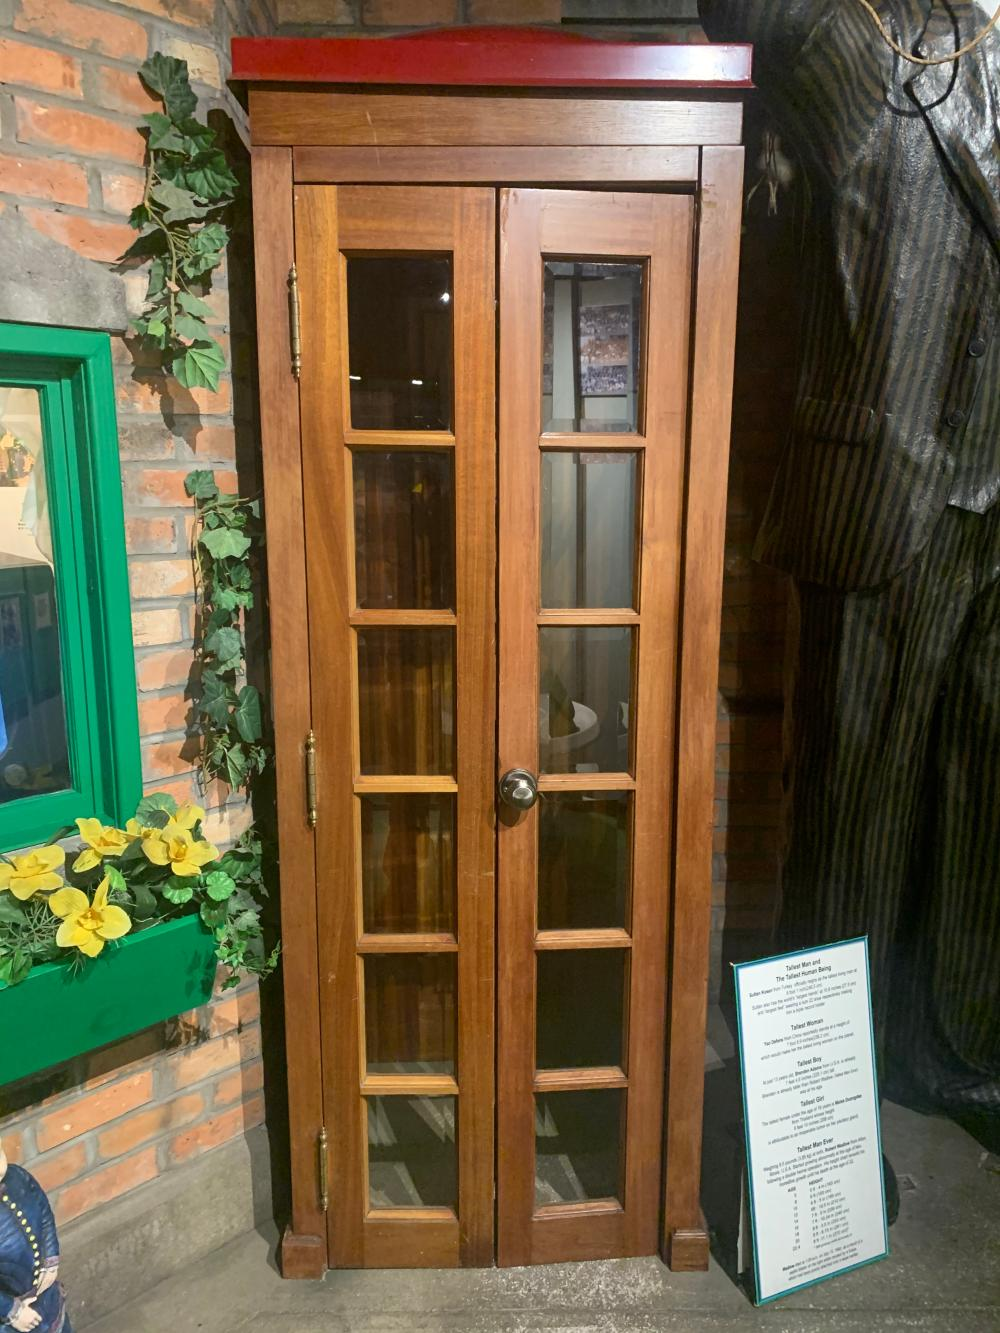 How Tall? Replica Phone Booth Museum Display Oddities